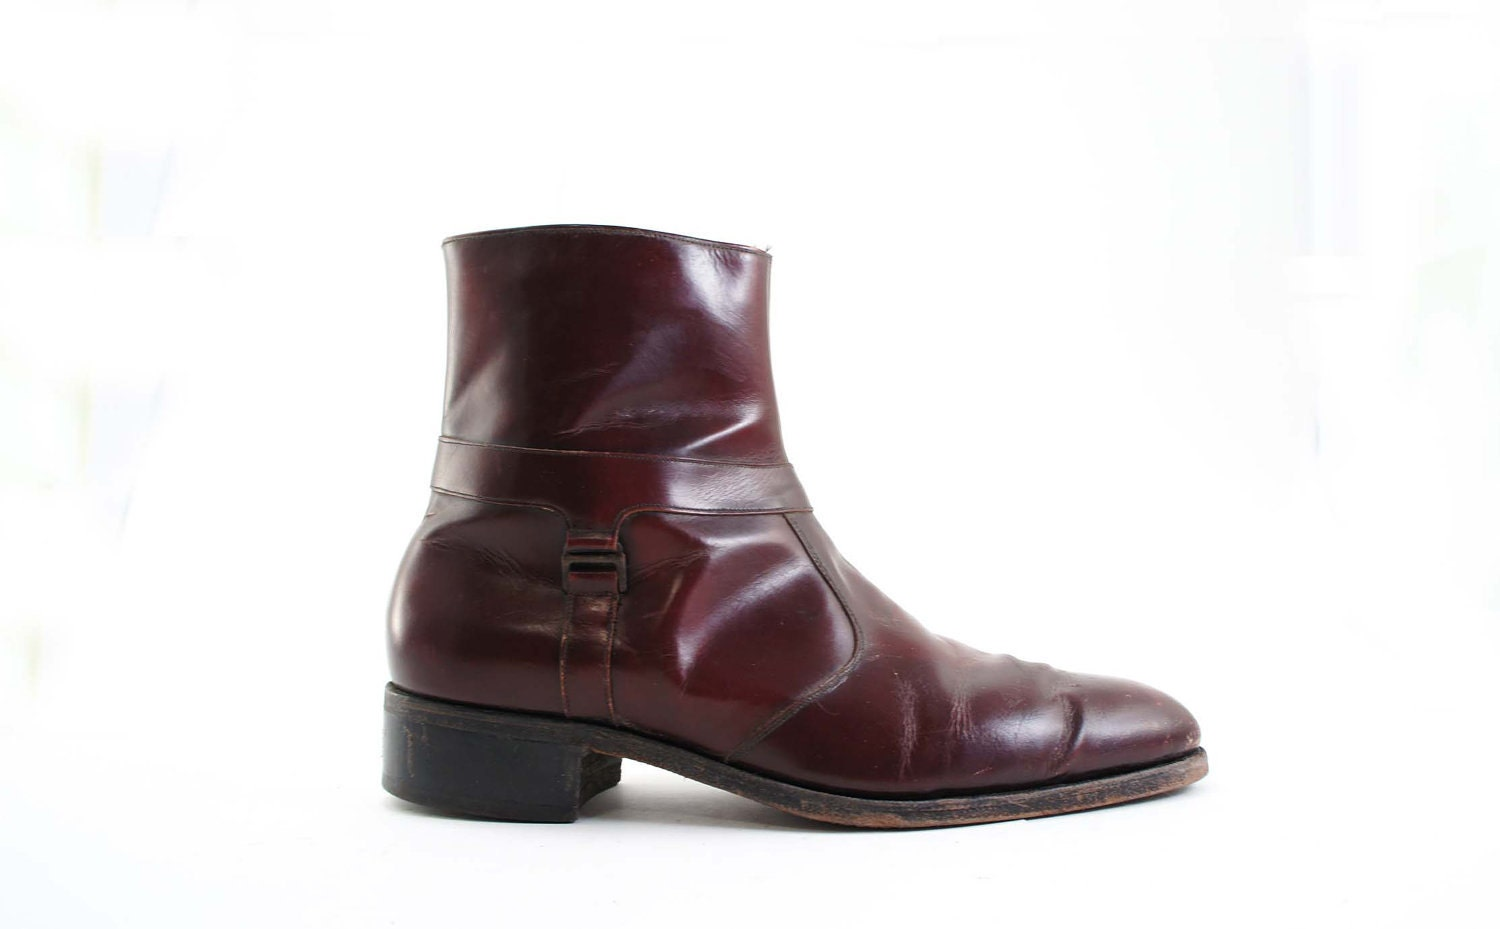 vintage s beatle boots in a burgundy leather in an